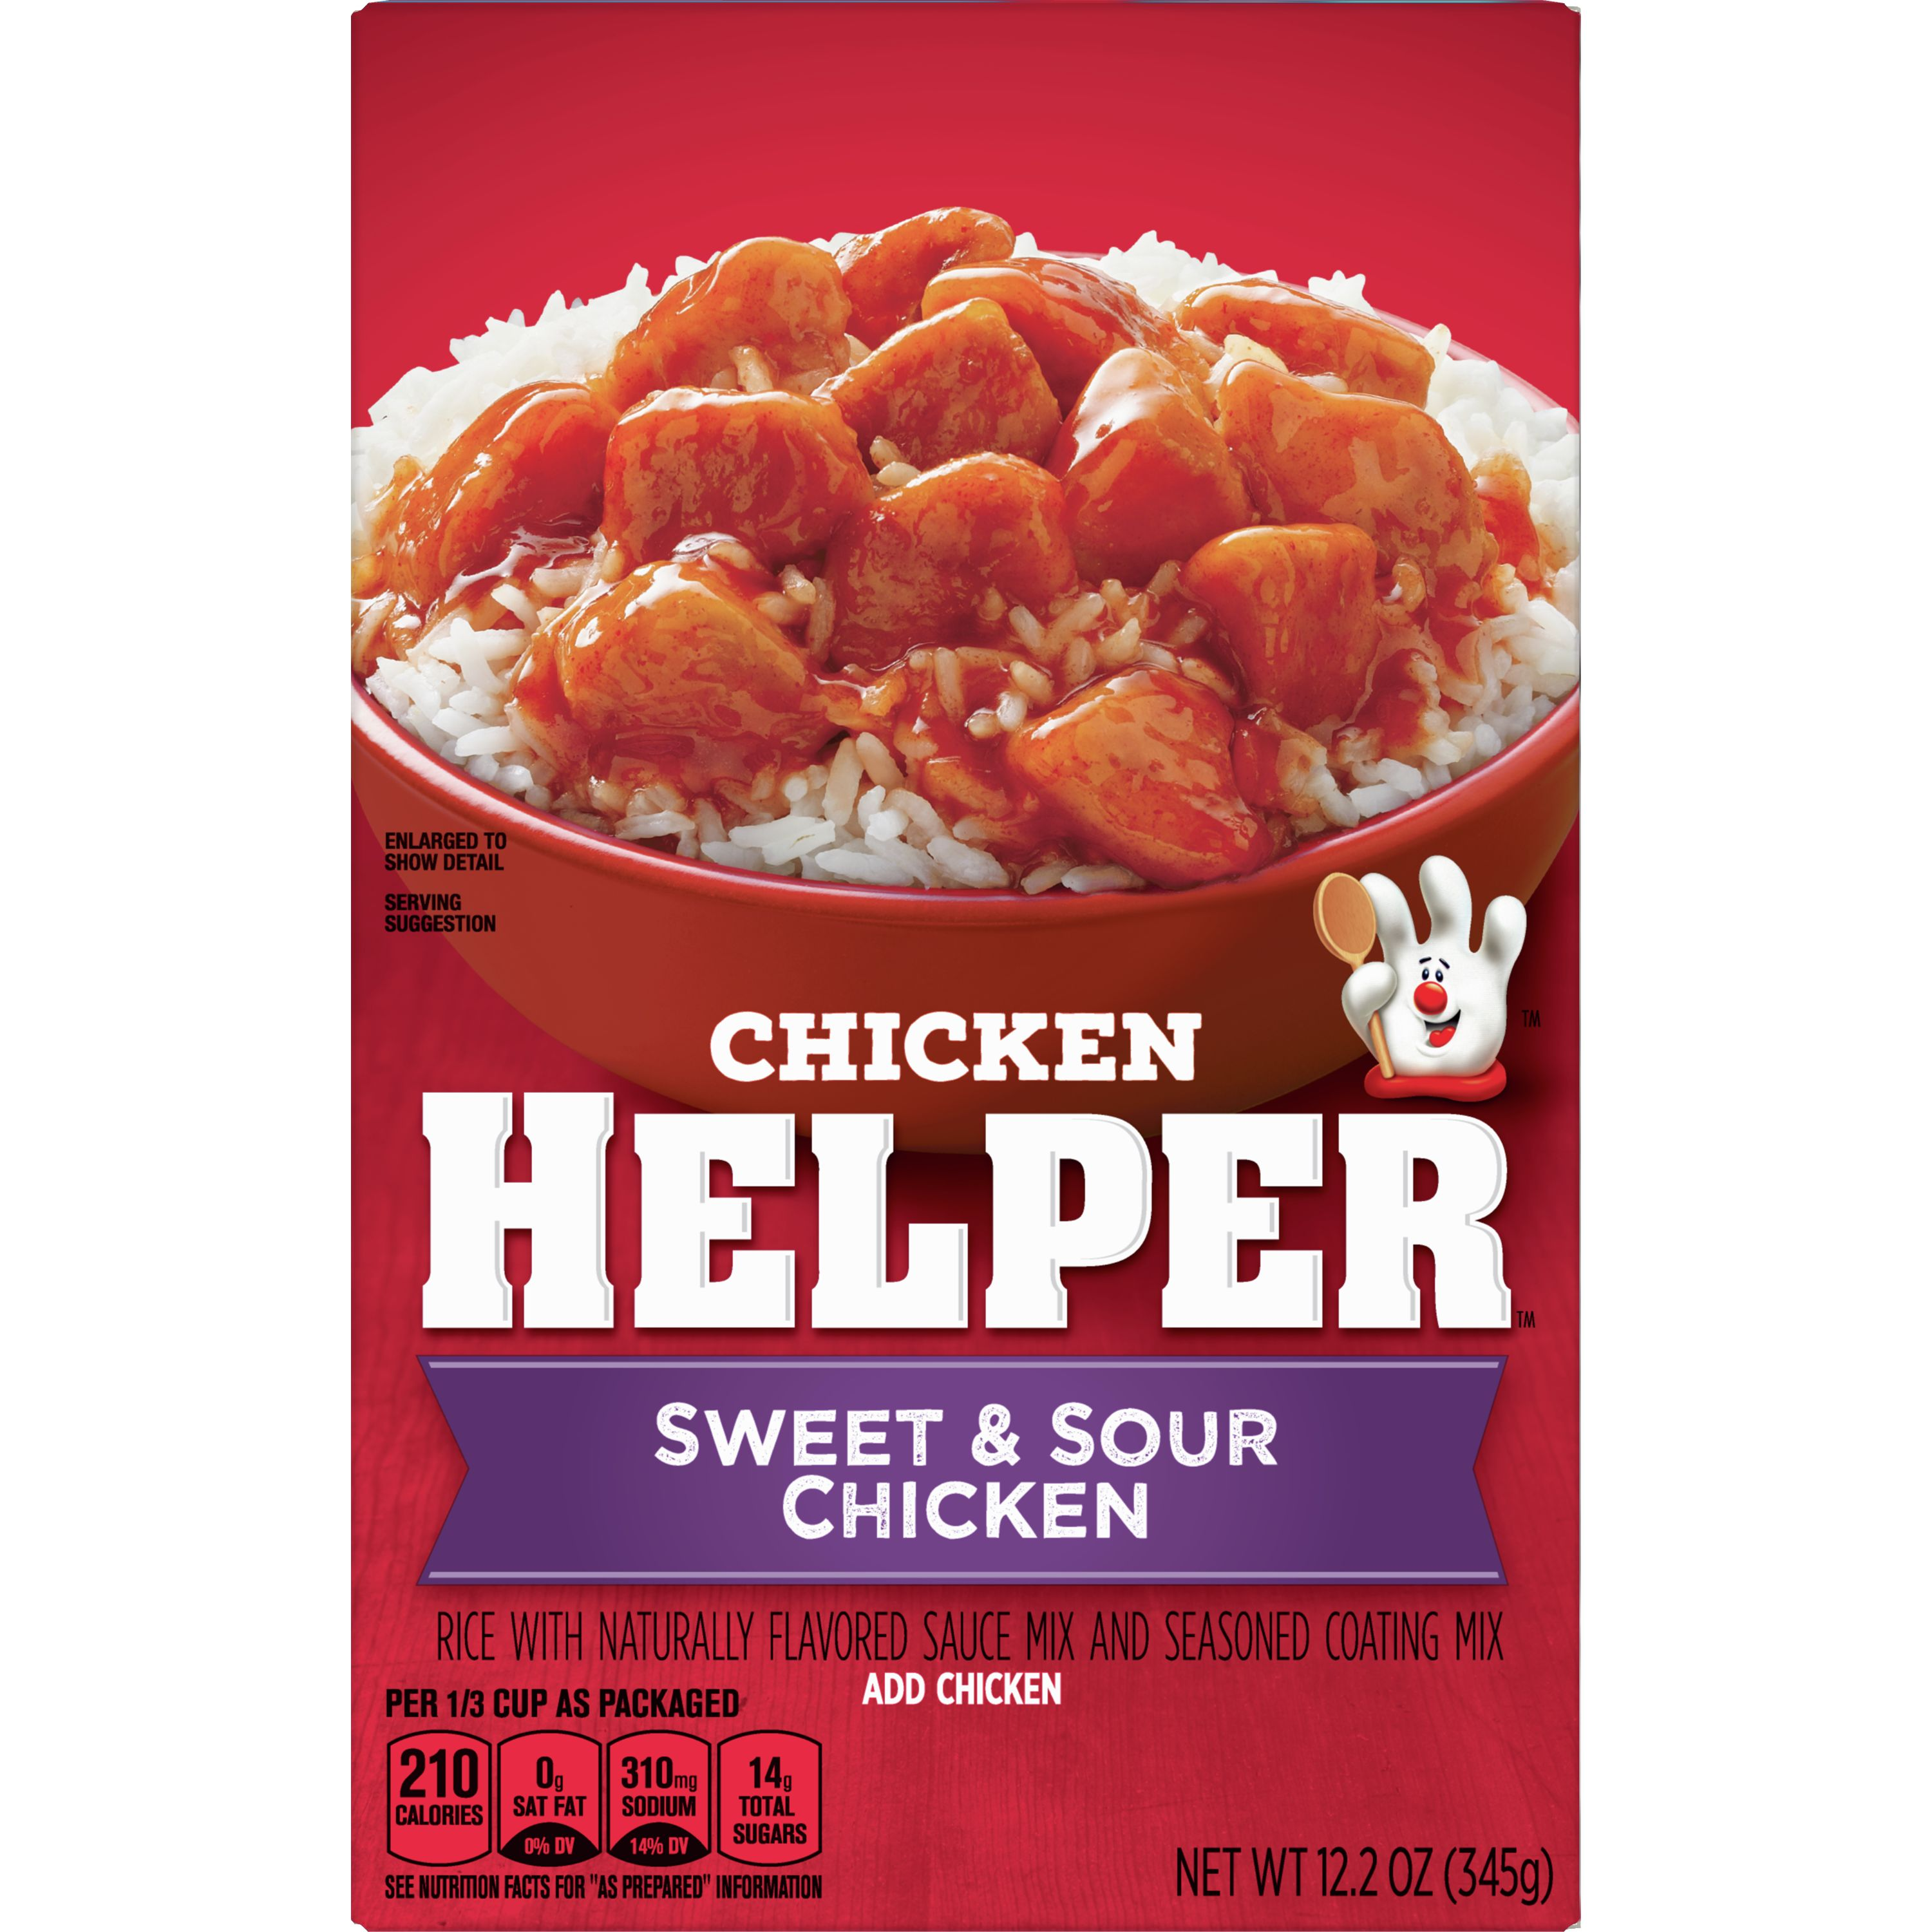 Chicken Helper Rice With Sauce Mix and Seasoned Coating Mix Sweet and Sour Chicken, 12.2 oz